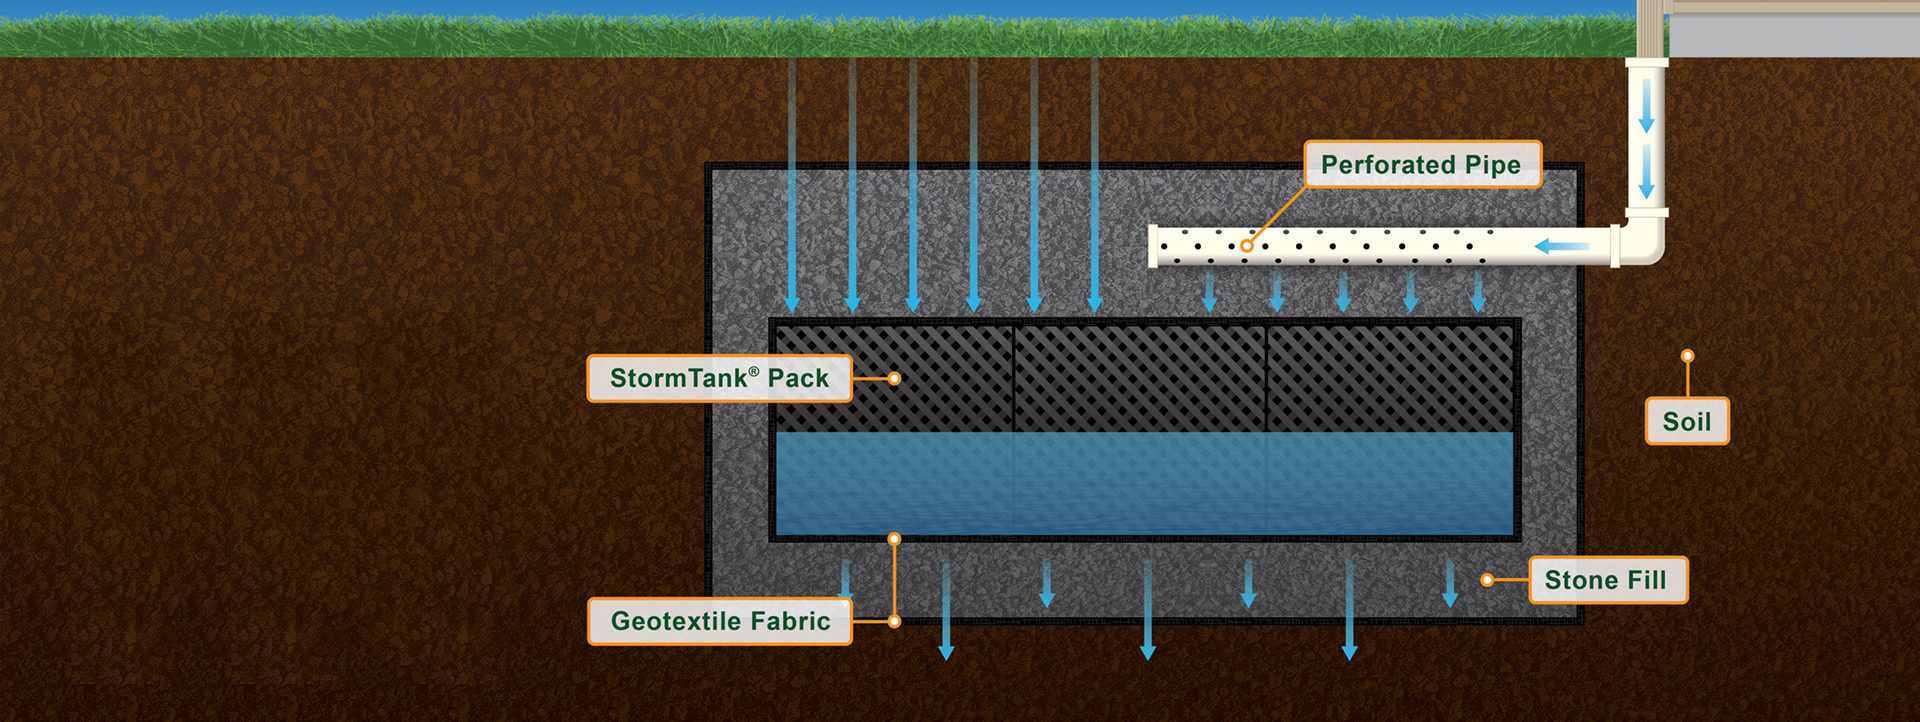 stormtank-pack-cutaway_how-it-works_banner